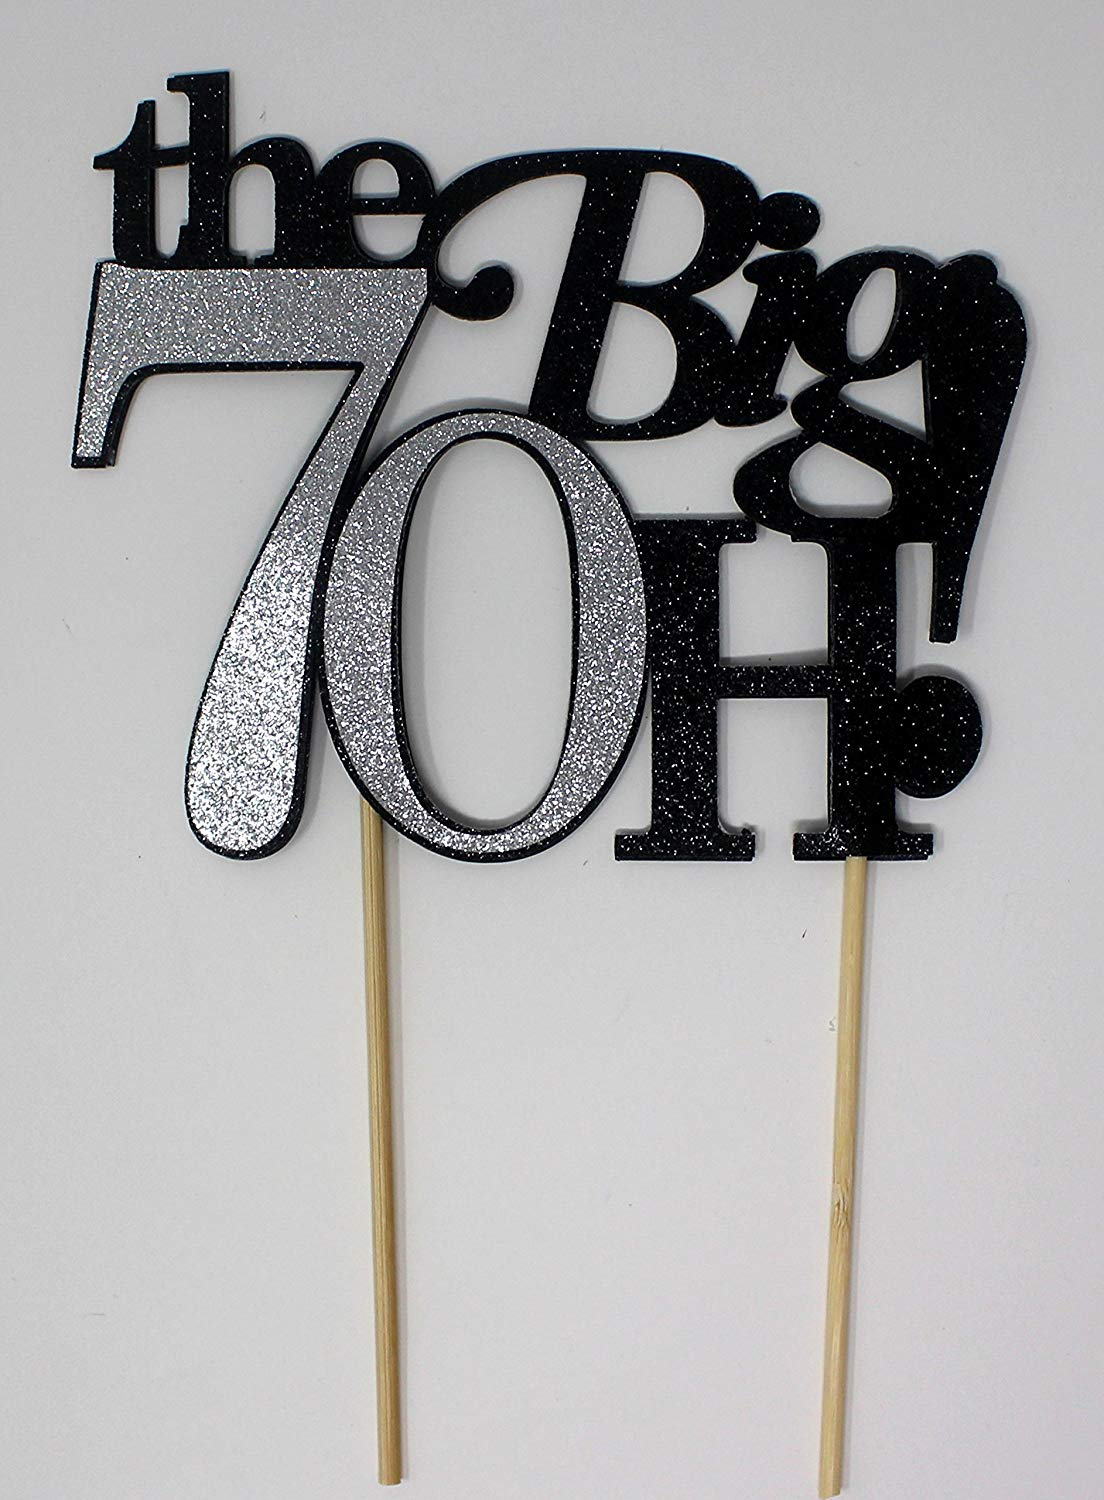 All About Details The Big 7OH! Cake Topper, 1pc, 70th Birthday Cake Topper, 70th Anniversary Cake Topper, 70th Birthday Decoration (Black & Silver)